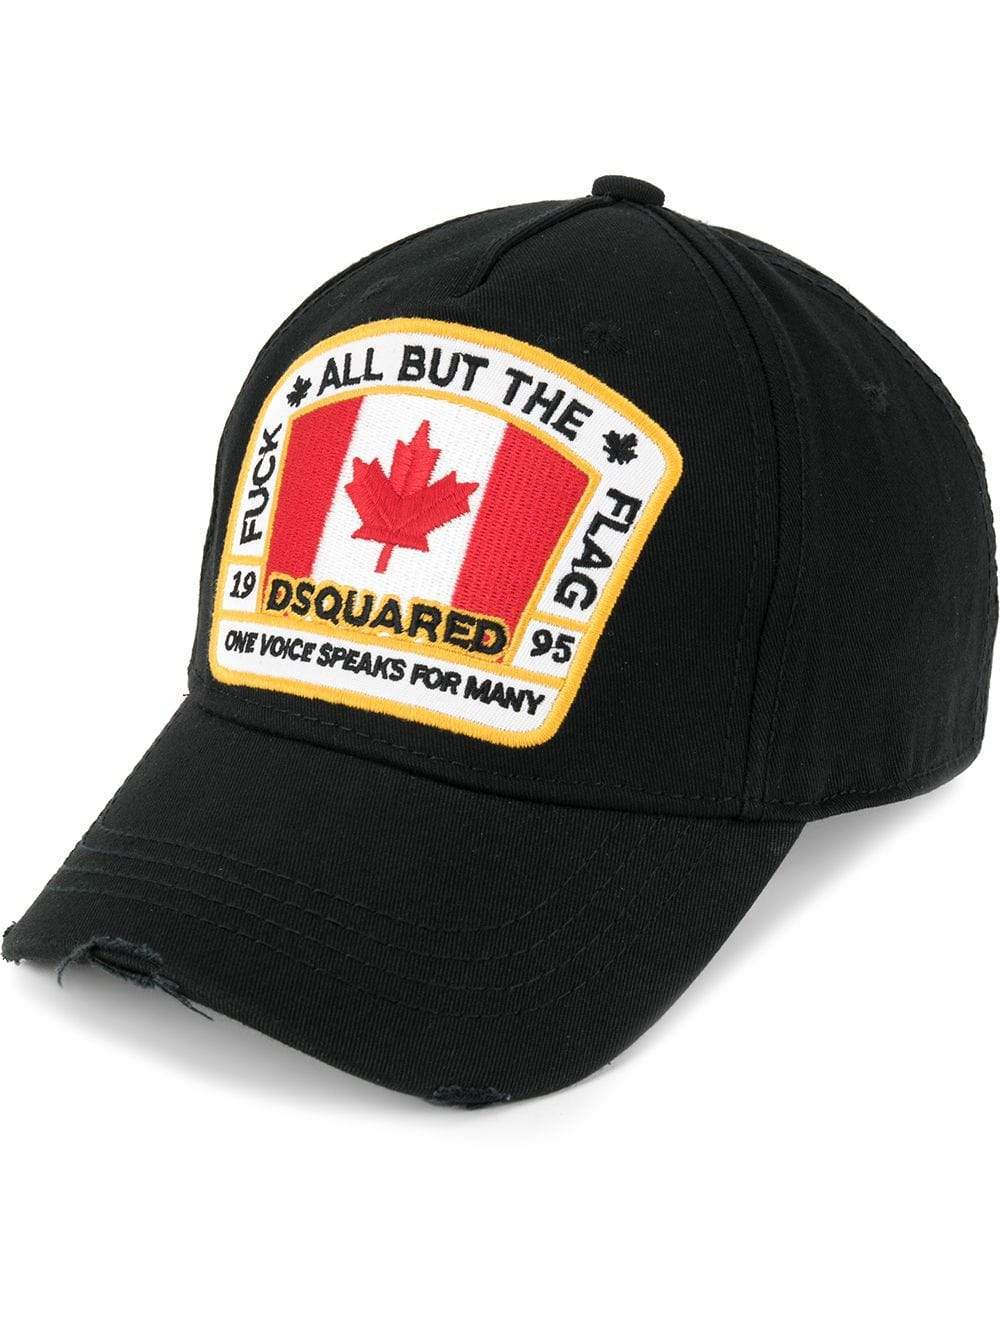 DSQUARED2 canadian patch baseball cap Black - Maison De Fashion